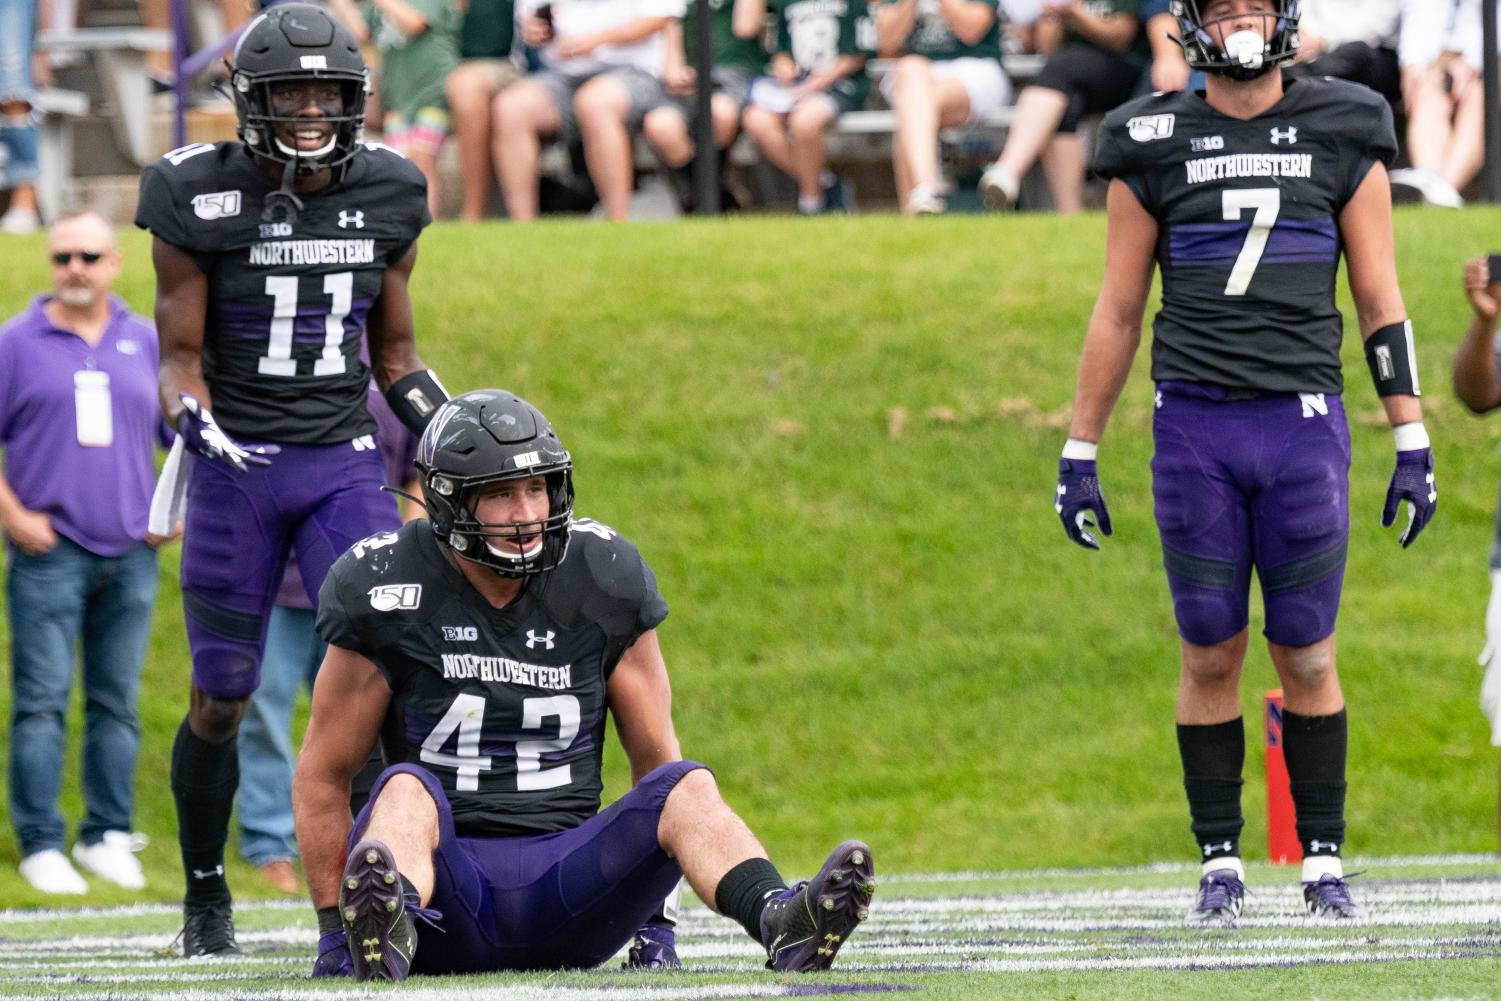 A group of Northwestern defenders show frustration in the end zone following a play. The Wildcats fell 31-10 to Michigan State in a disappointing loss to open Big Ten play.